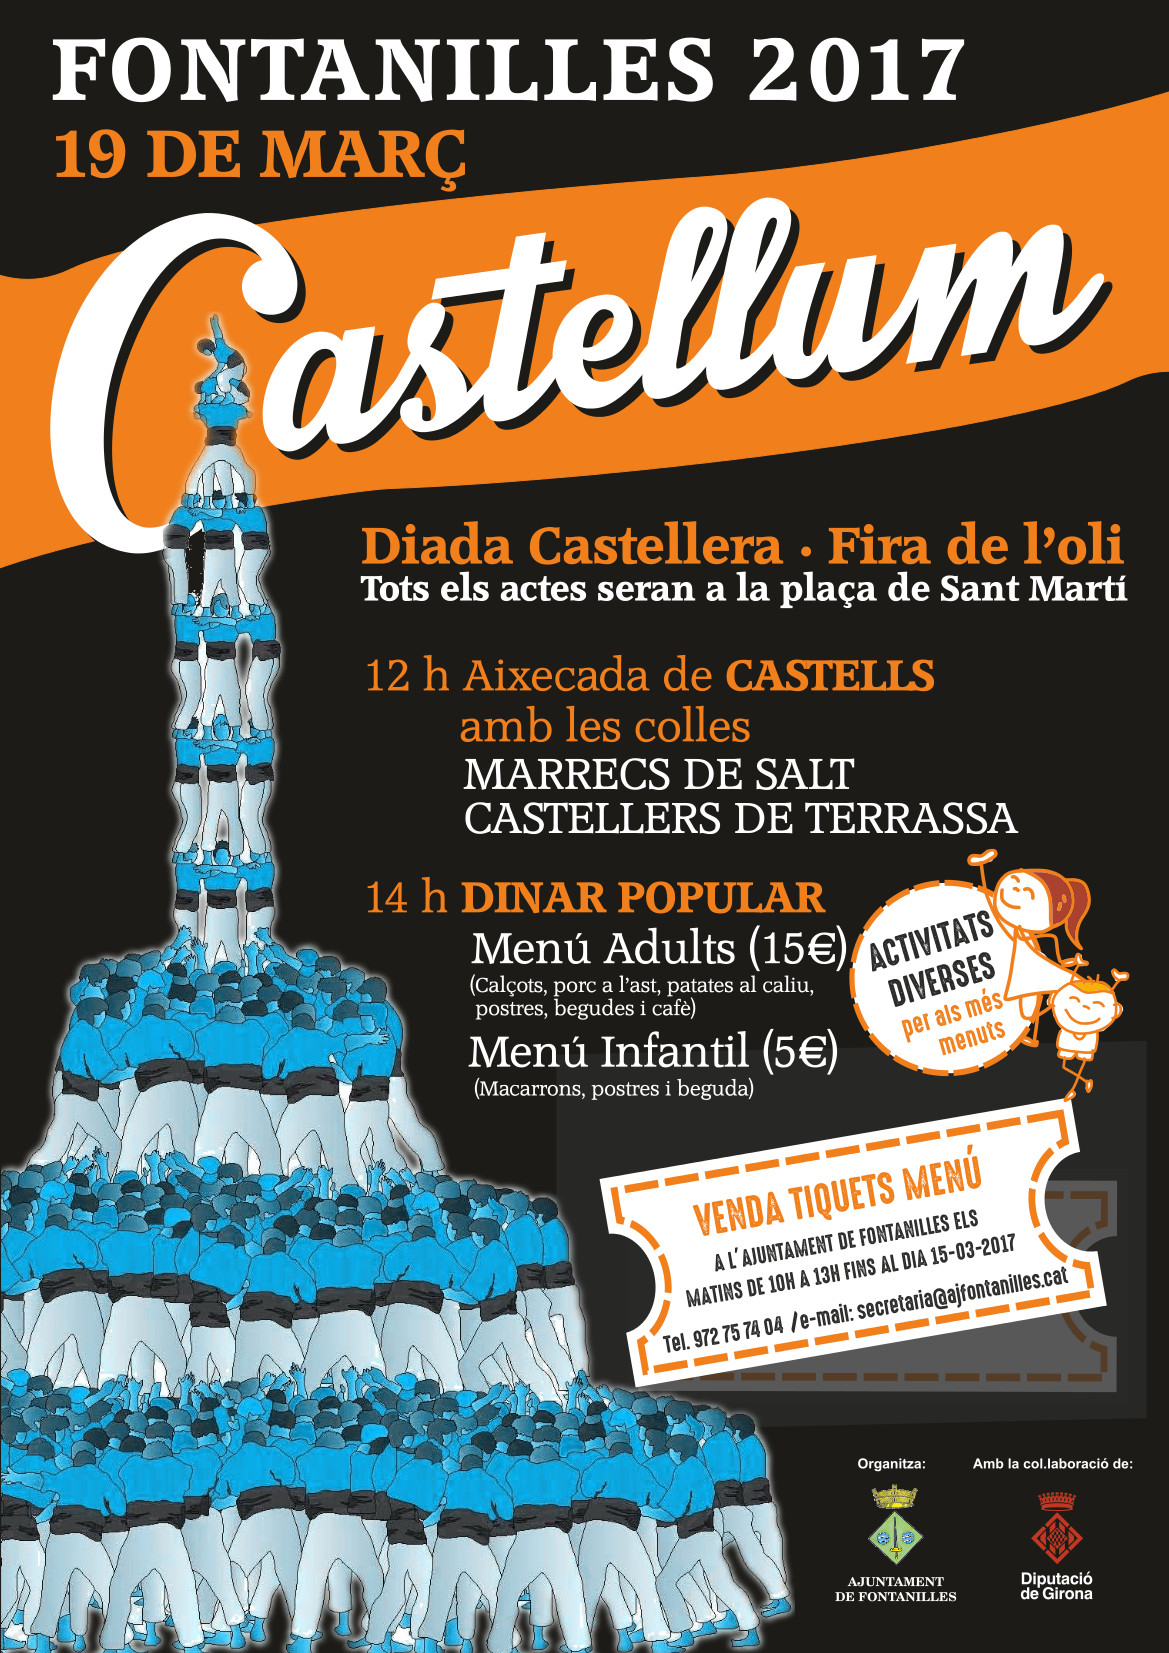 CASTELLUM mixta + mail